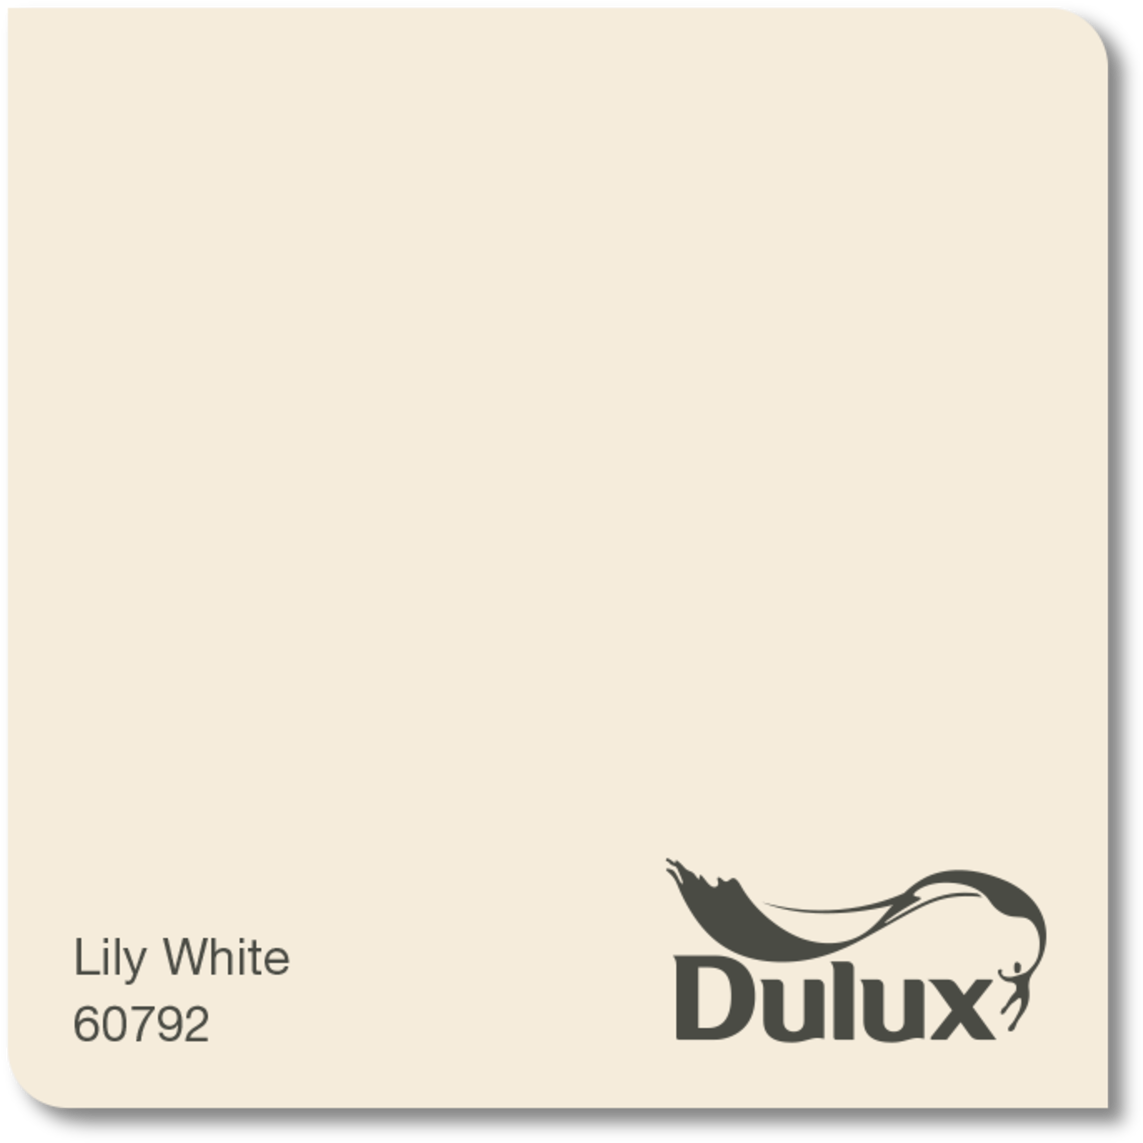 Download Gold Anti-formaldehyde Emulsion Paint 5l - Dulux 30gy 76 017 -  Full Size PNG Image - PNGkit